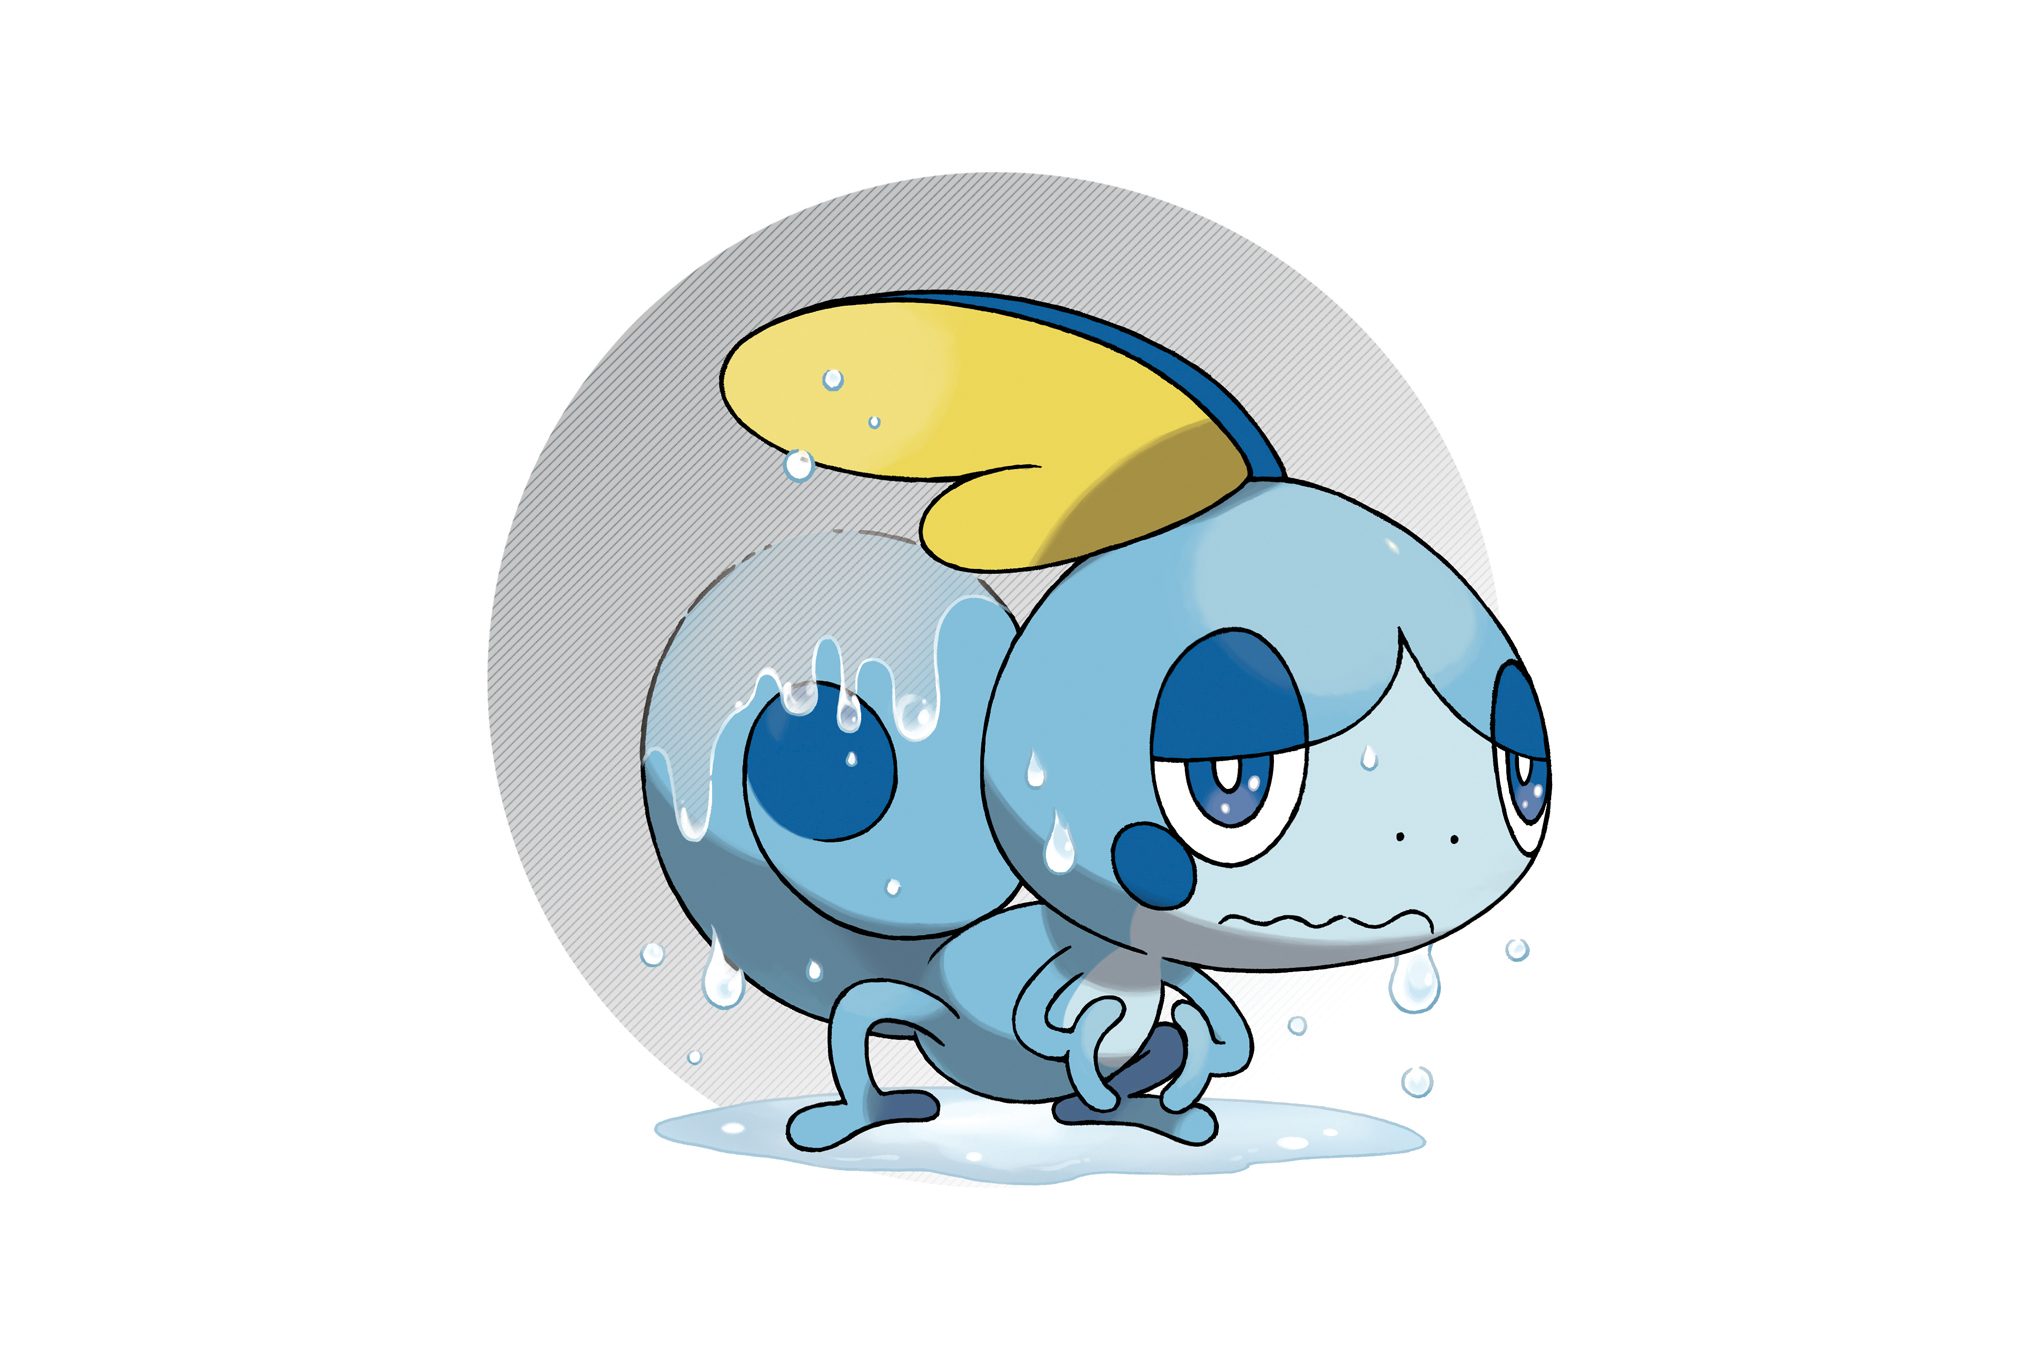 Pokémon Sword and Shield Sobble guide: Evolutions and best moves